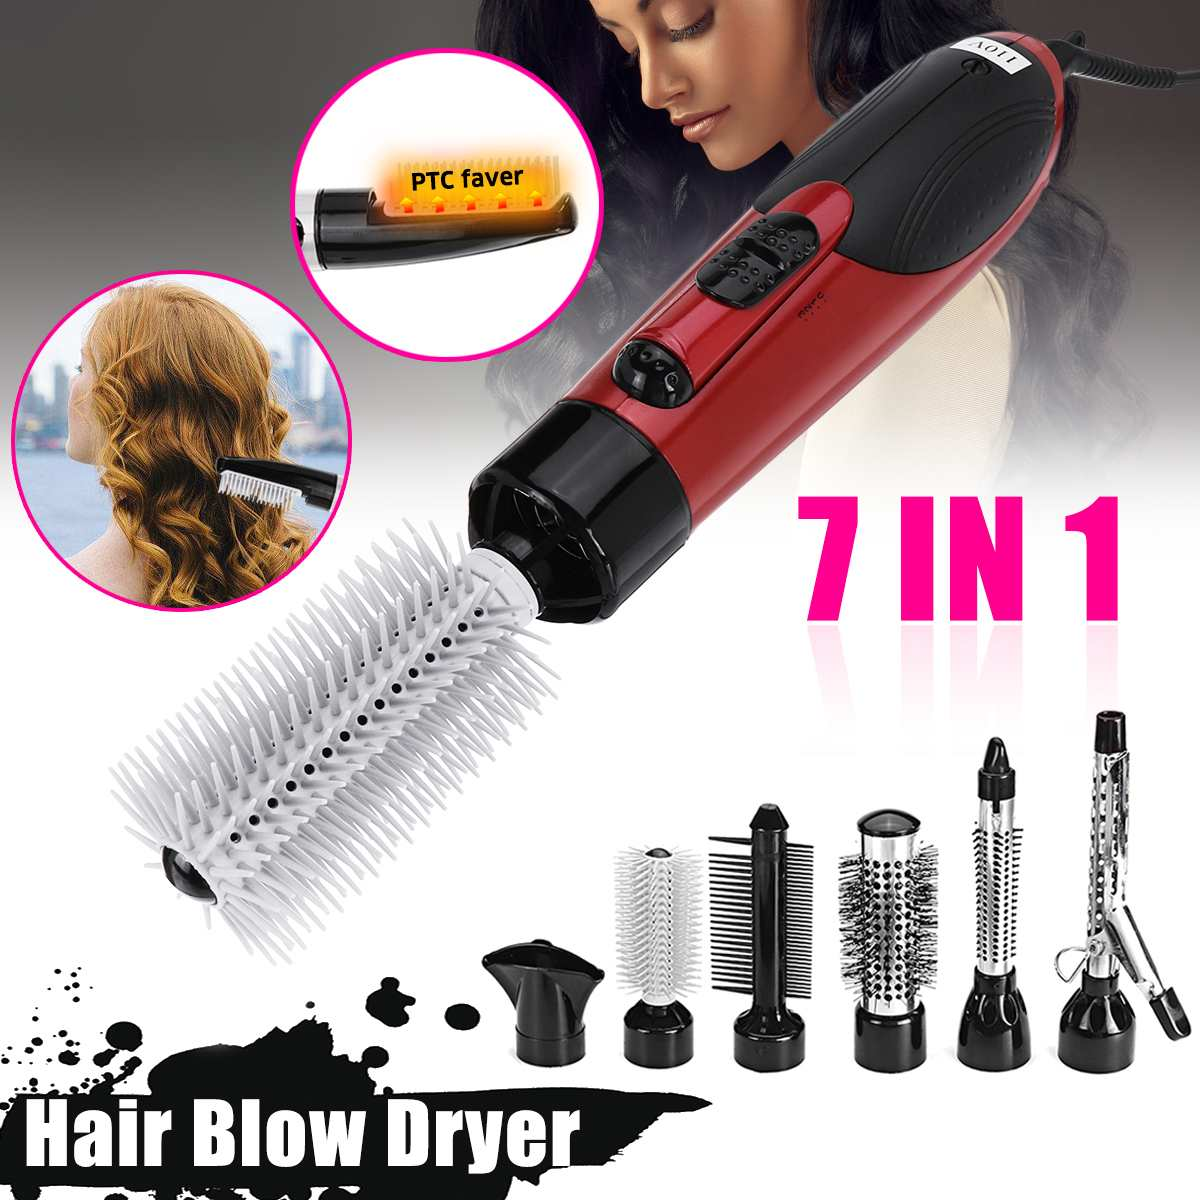 Professional 7 in 1 Electric Hair Dryer Hot Air Brush Comb Styling Curling Machine Multifunctional Styling Tools Set HairdryerProfessional 7 in 1 Electric Hair Dryer Hot Air Brush Comb Styling Curling Machine Multifunctional Styling Tools Set Hairdryer